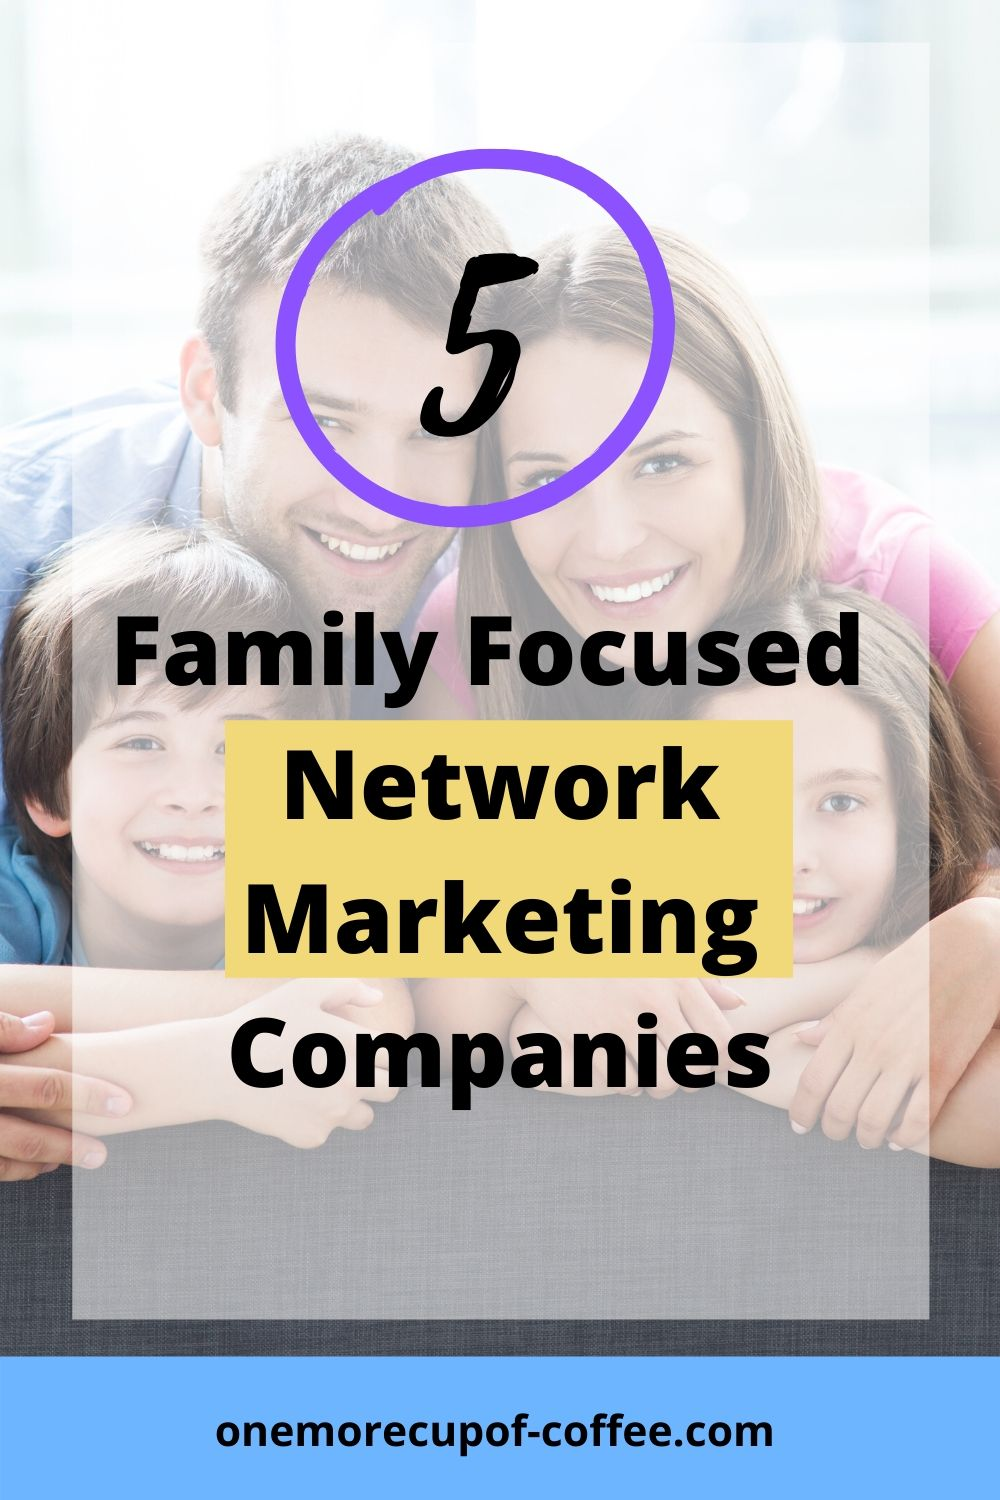 Family of four to represent family focused network marketing companies